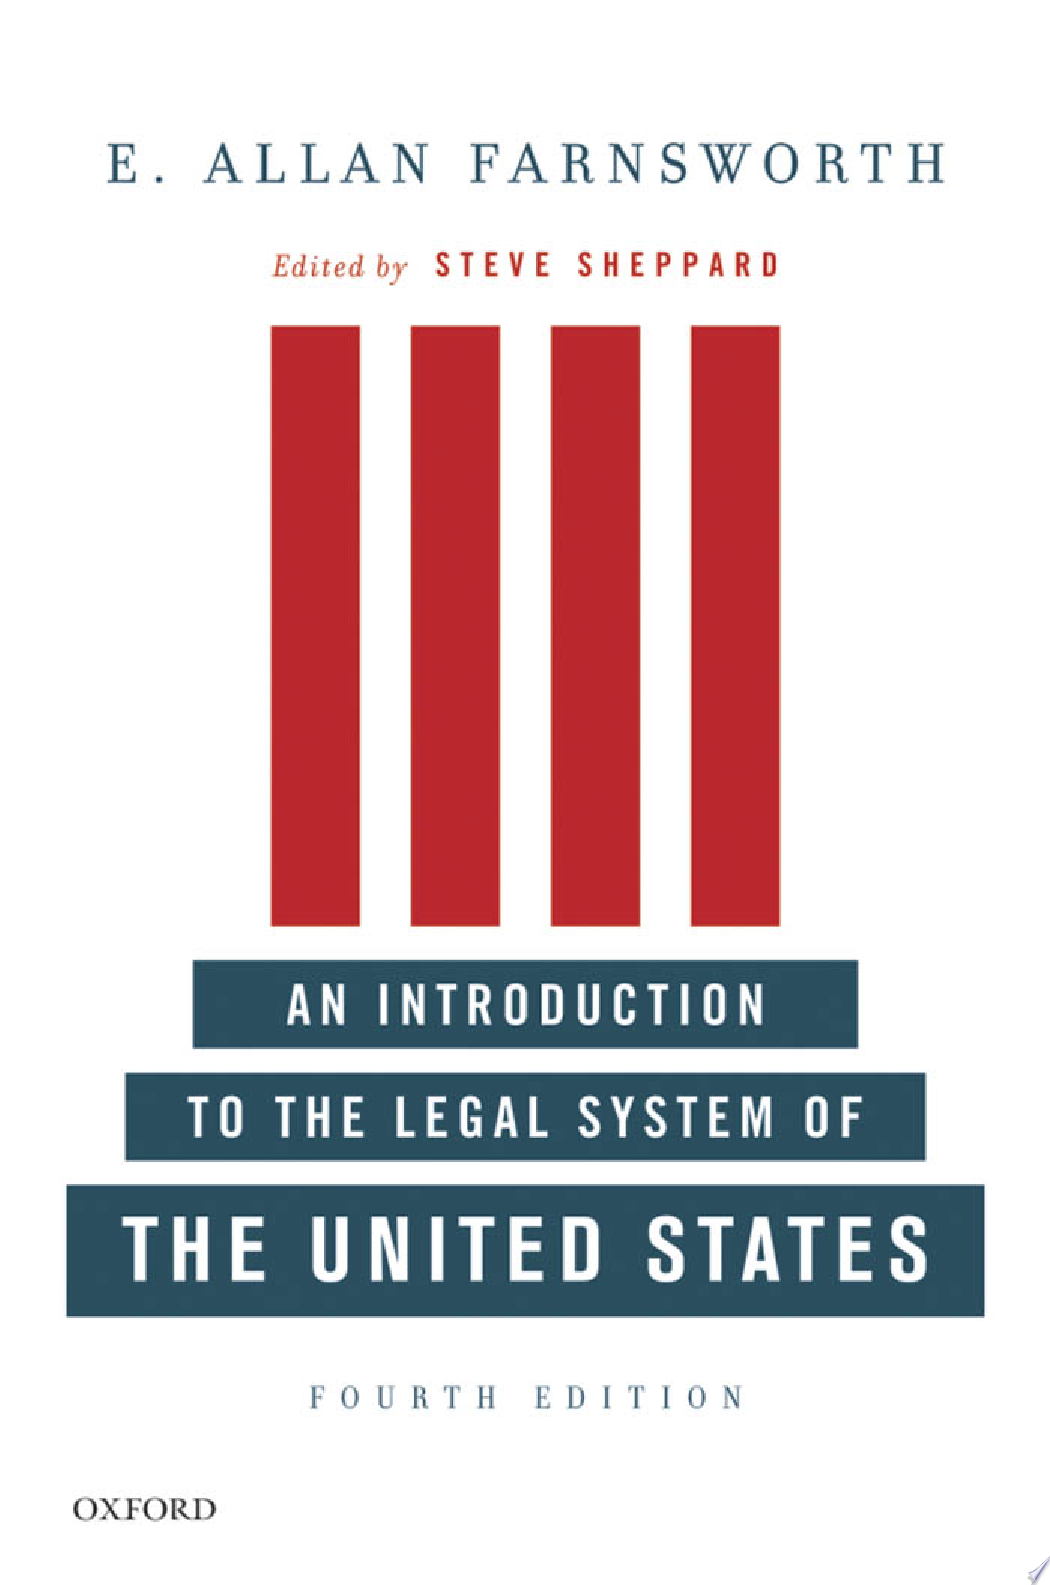 An Introduction to the Legal System of the United States